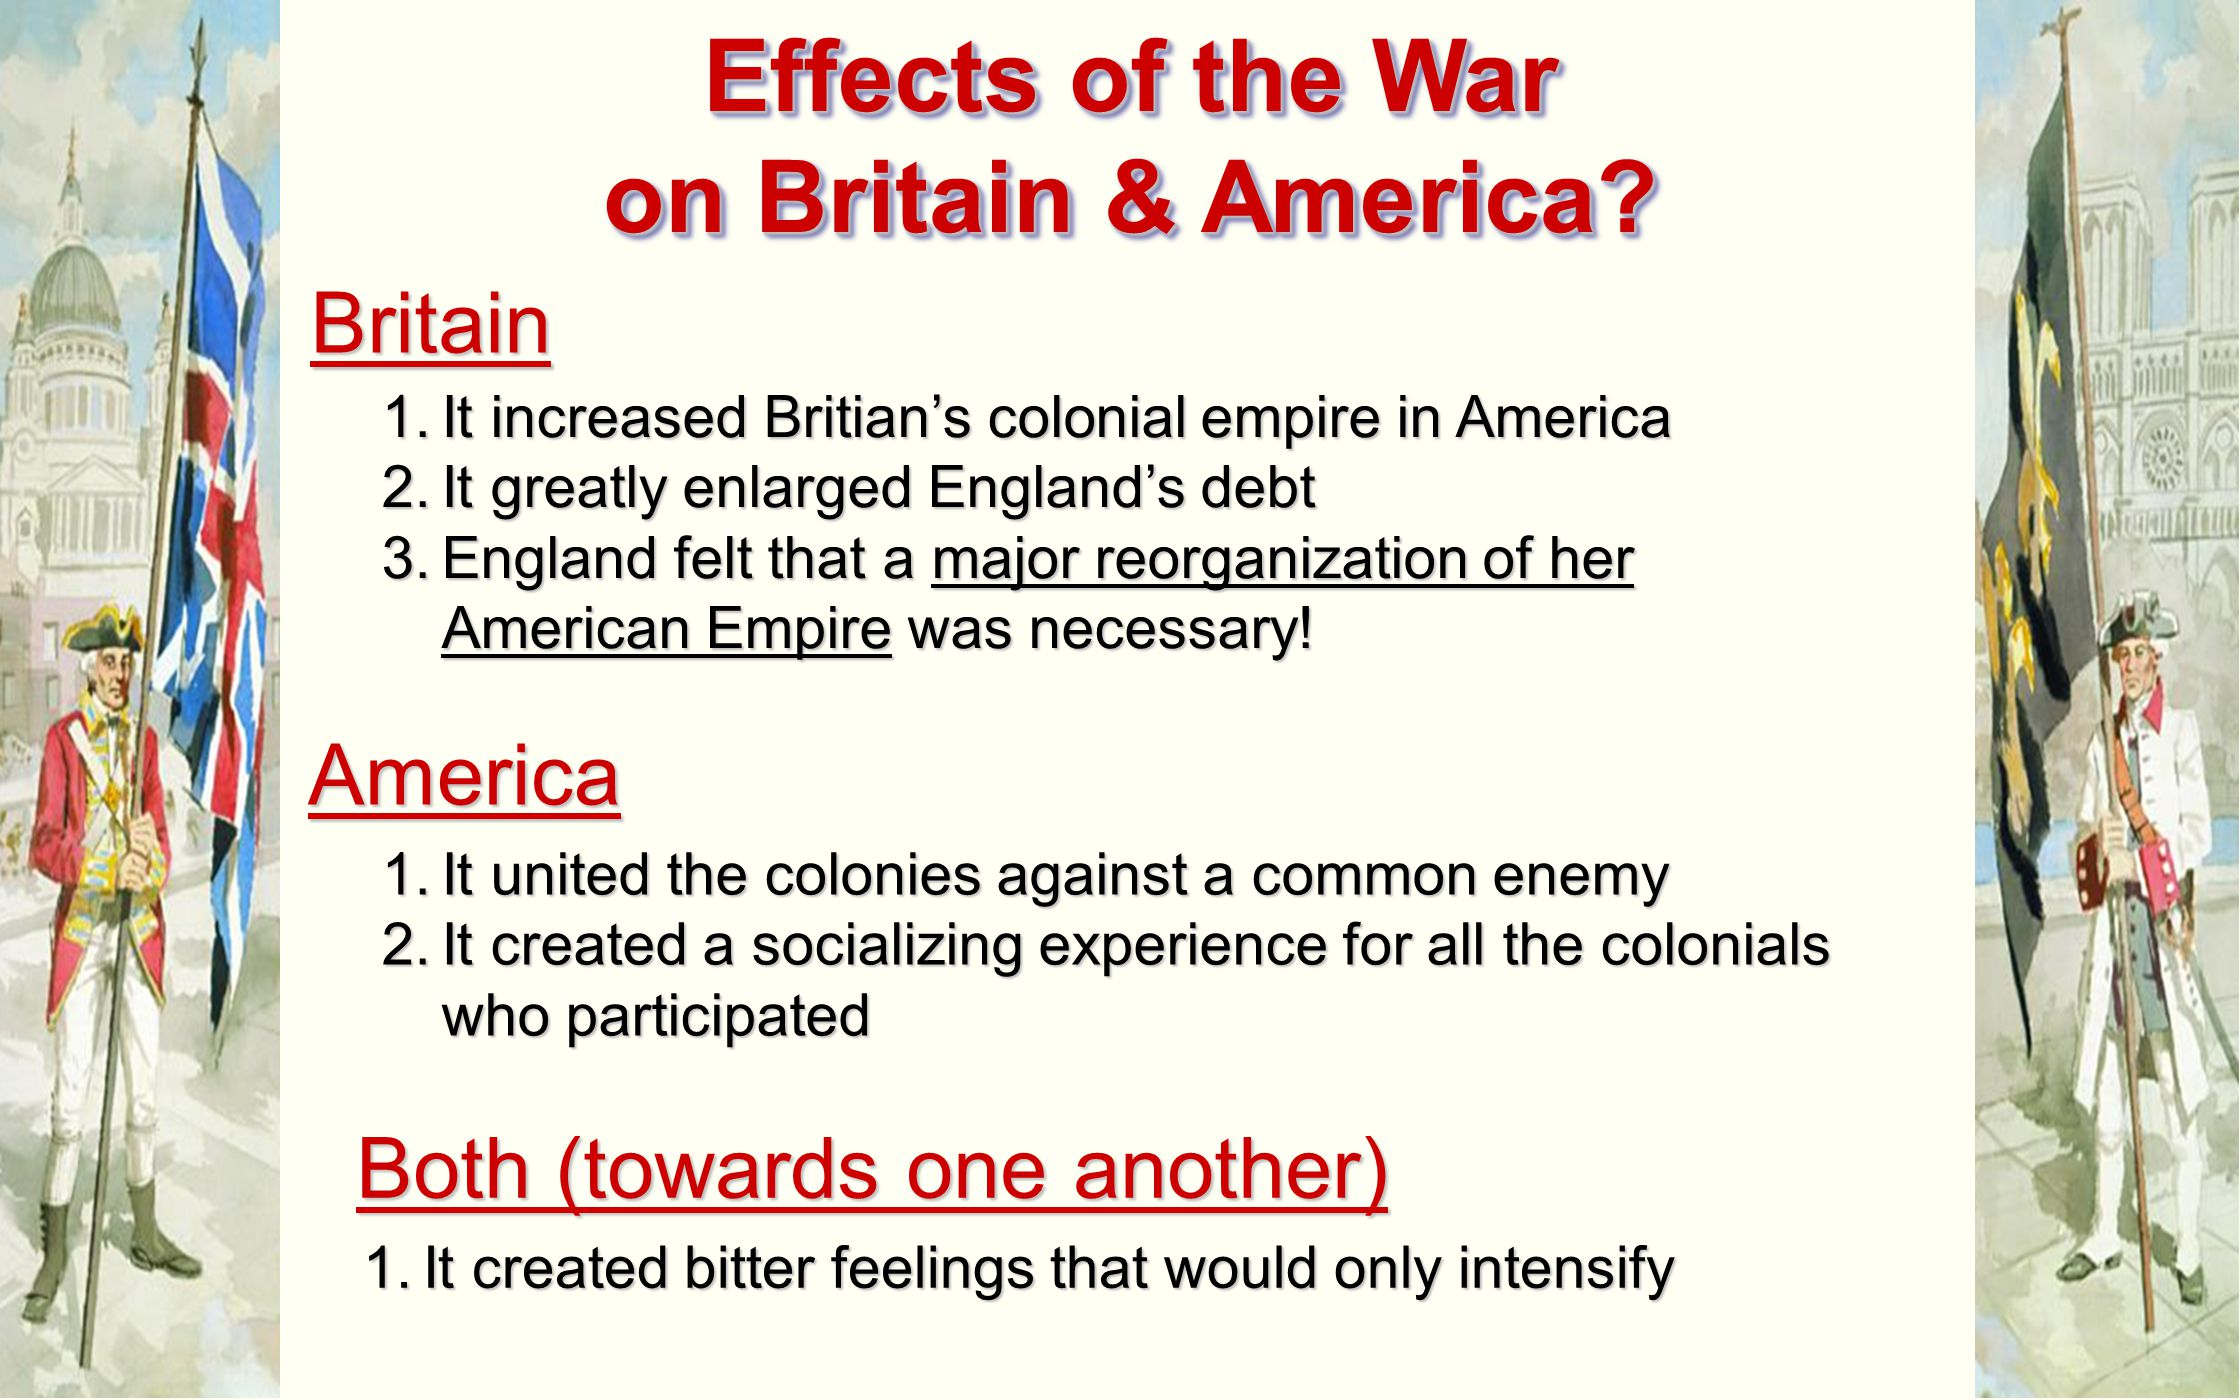 Effects of the War on Britain & America